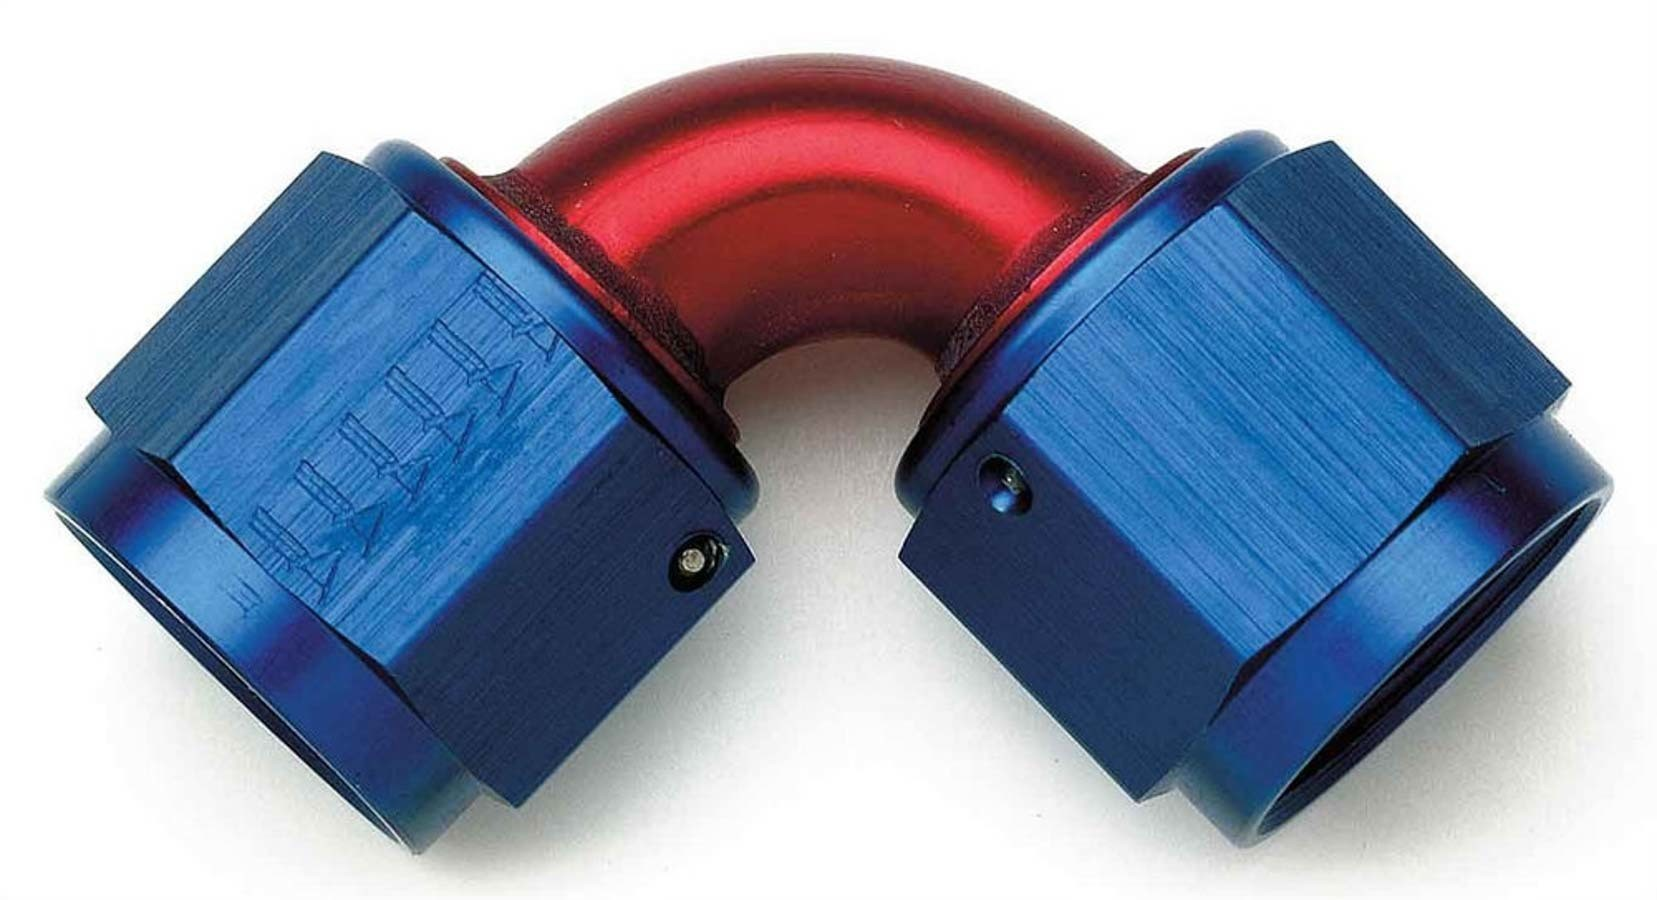 Aeroquip FCM2980 Fitting, Adapter, 90 Degree, 10 AN Female Swivel to 10 AN Female Swivel, Aluminum, Blue / Red Anodize, Each